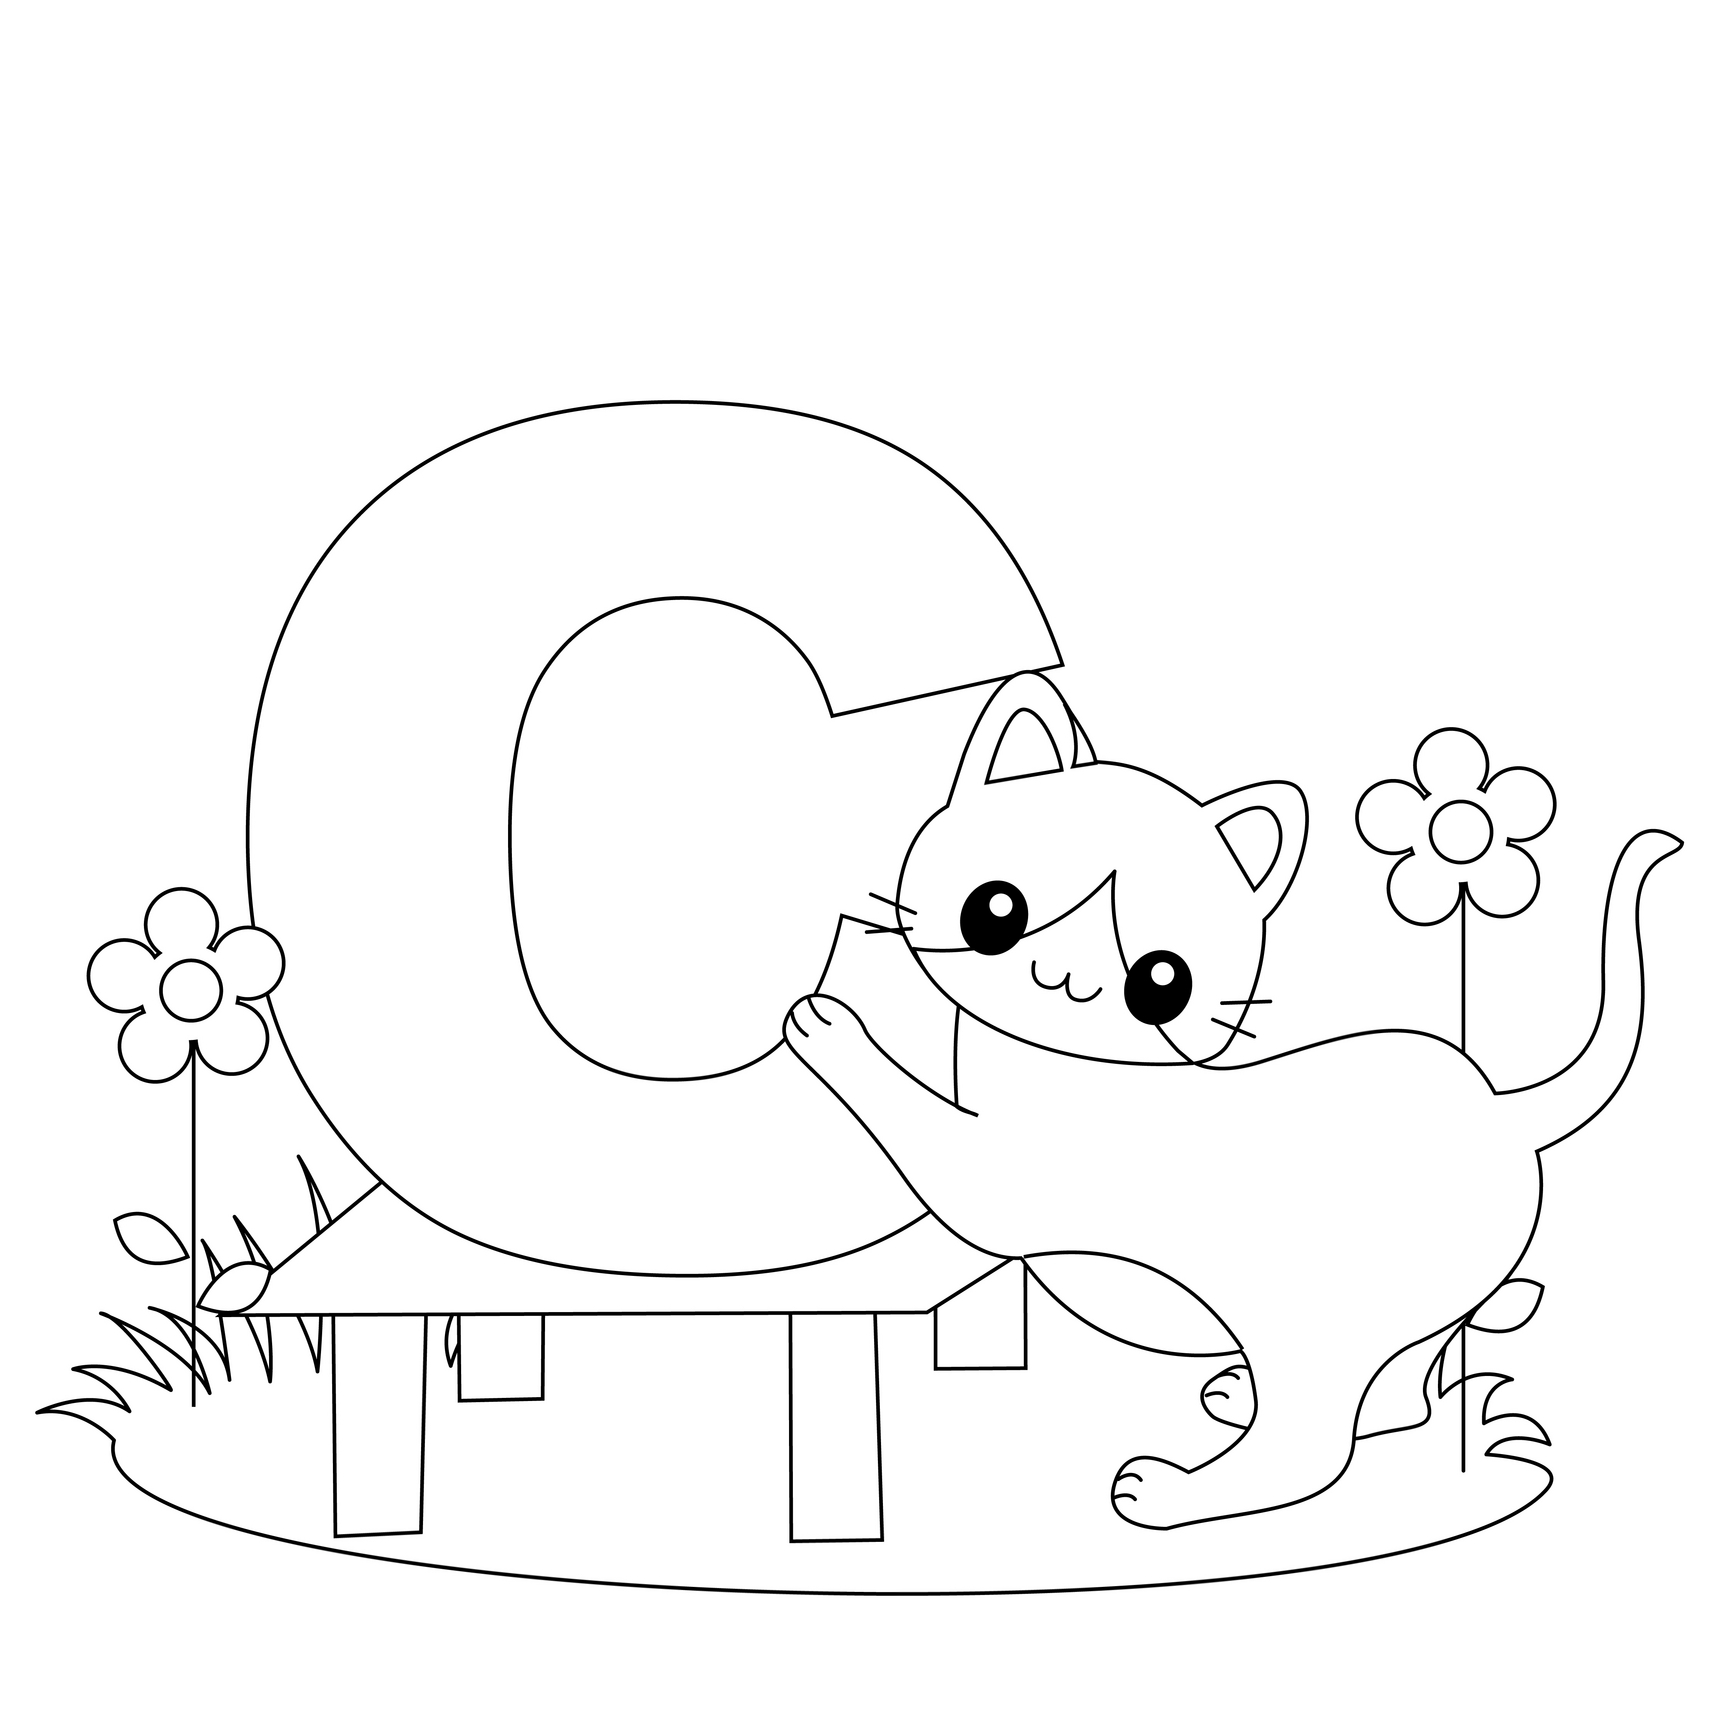 Free Printable Letter Coloring Pages At Getdrawings Com Free For